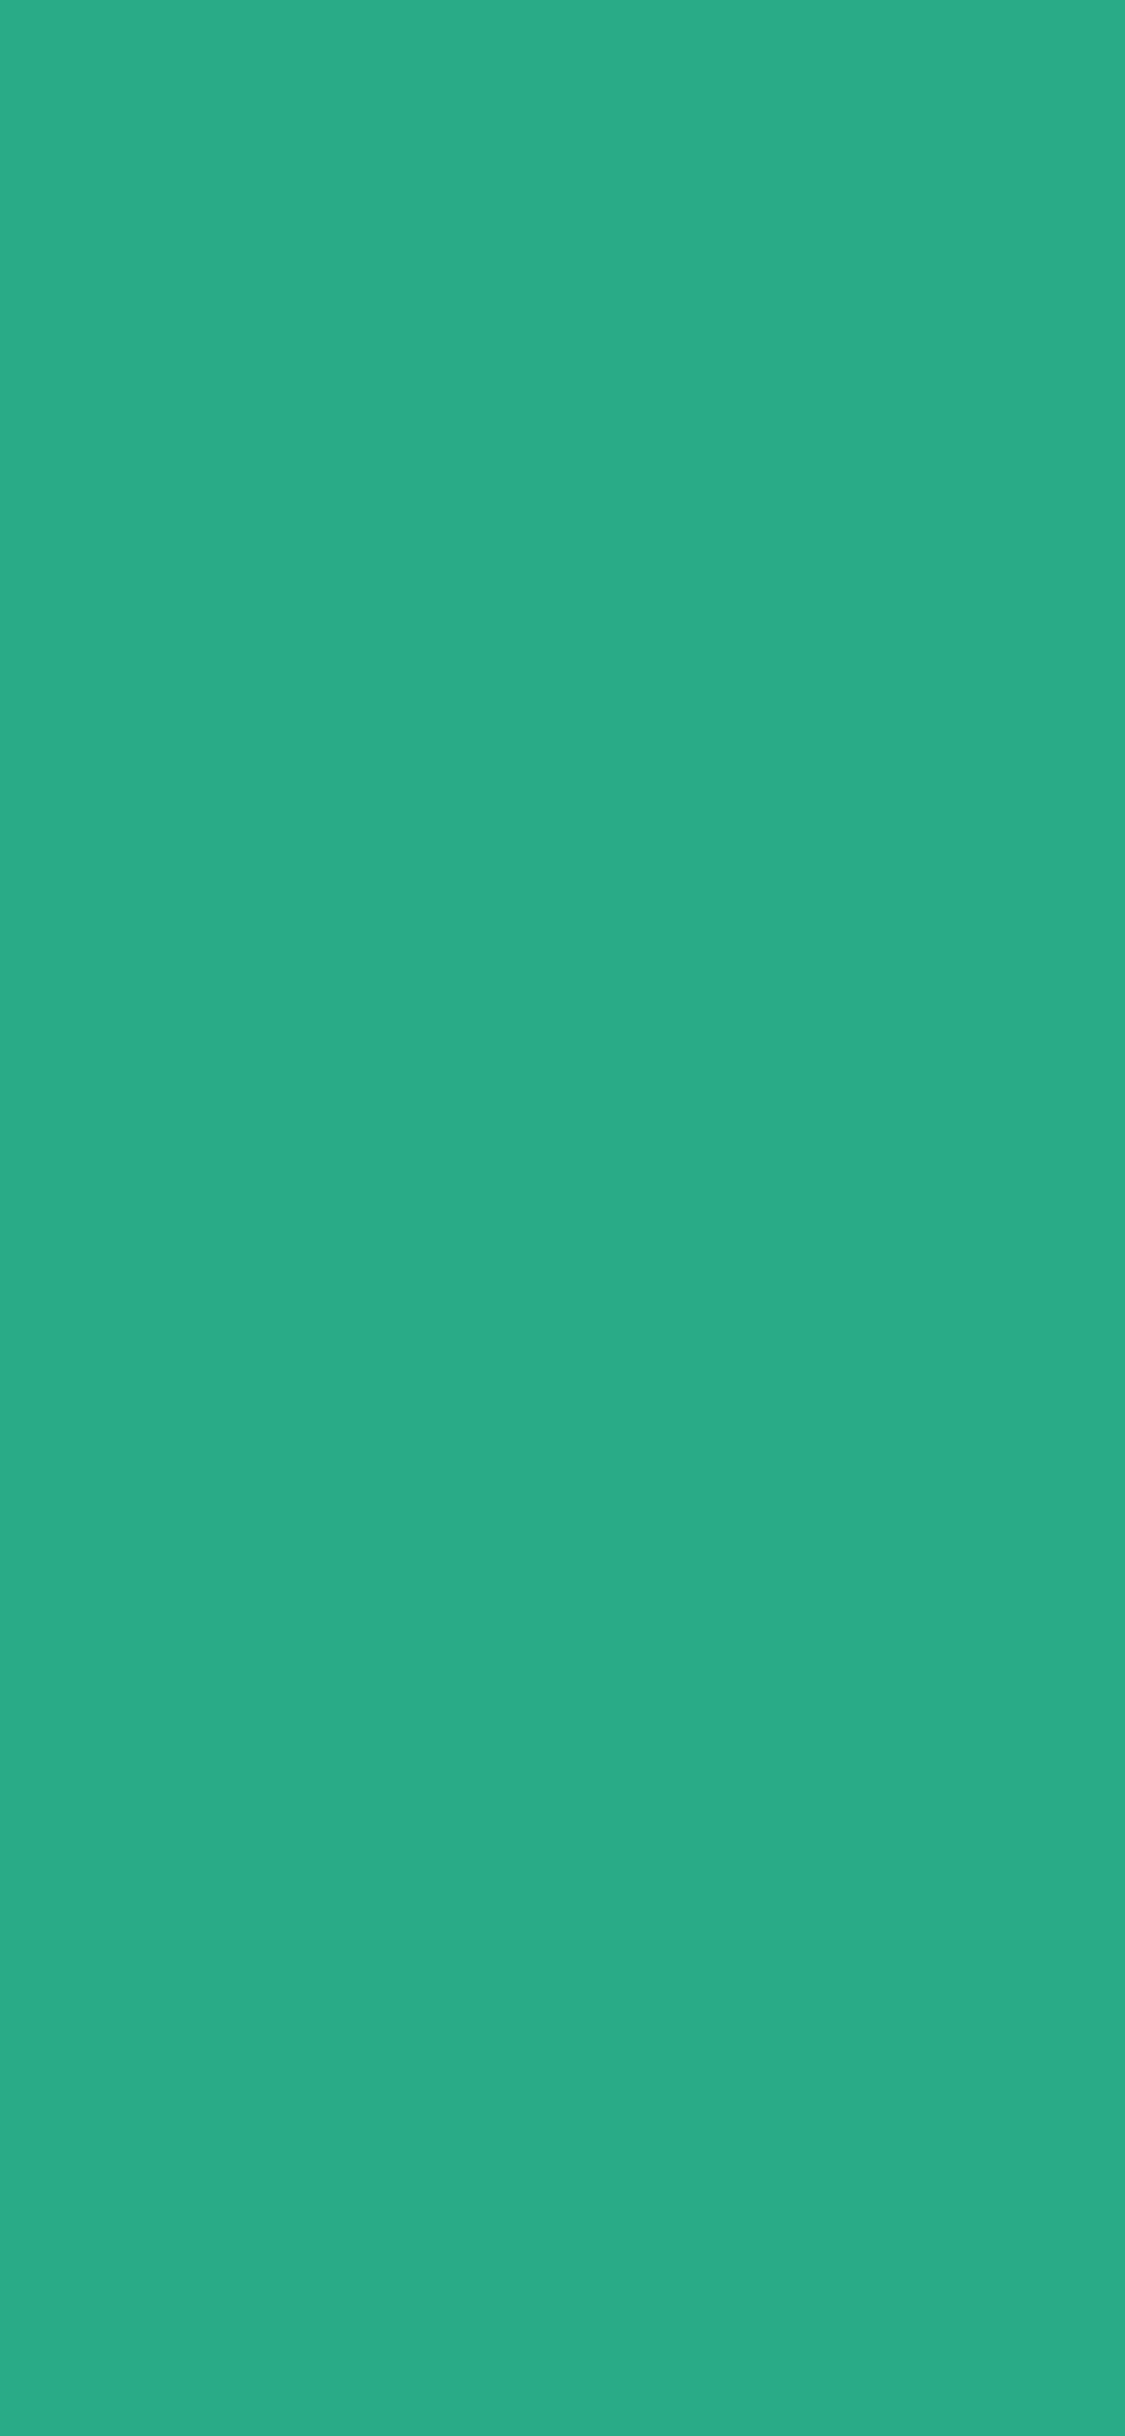 1125x2436 Jungle Green Solid Color Background